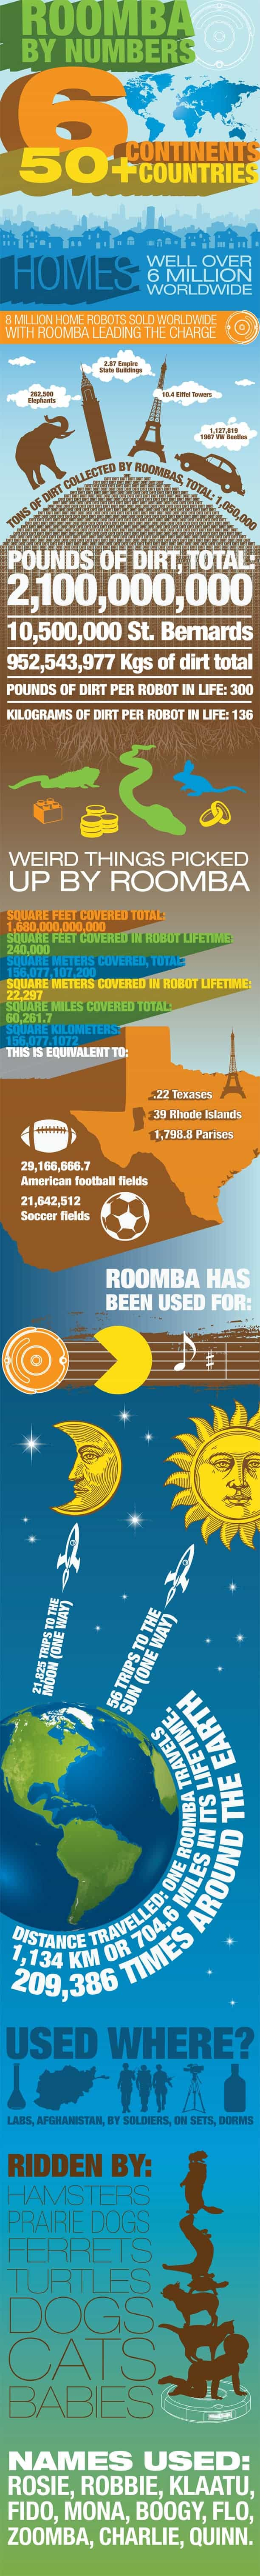 Roomba by Numbers